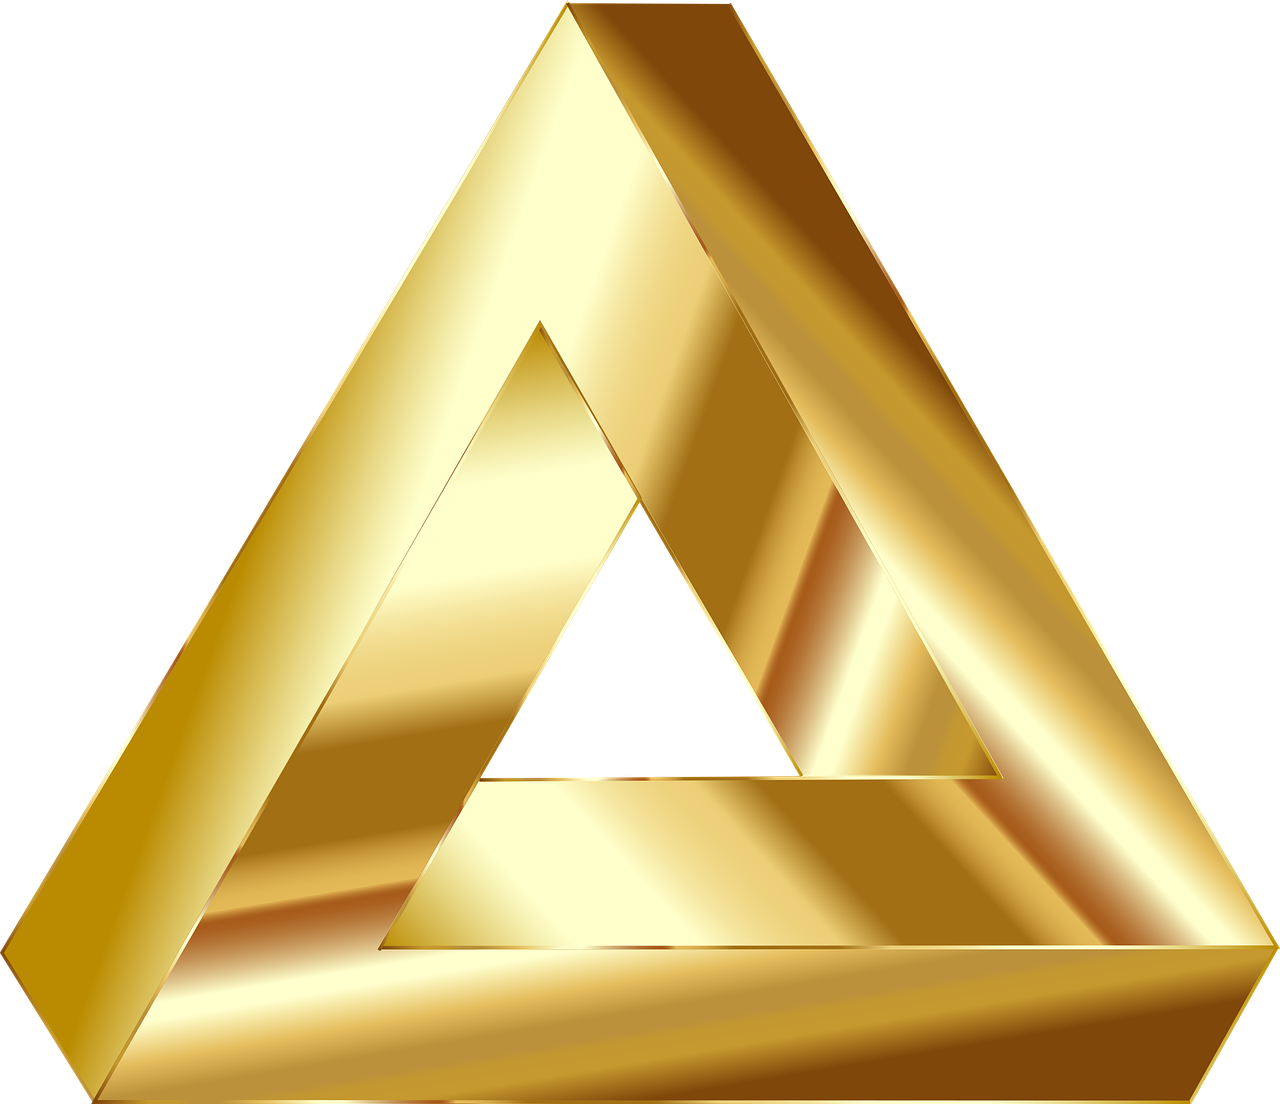 Triangle clip gold. Penrose optical illusion abstract